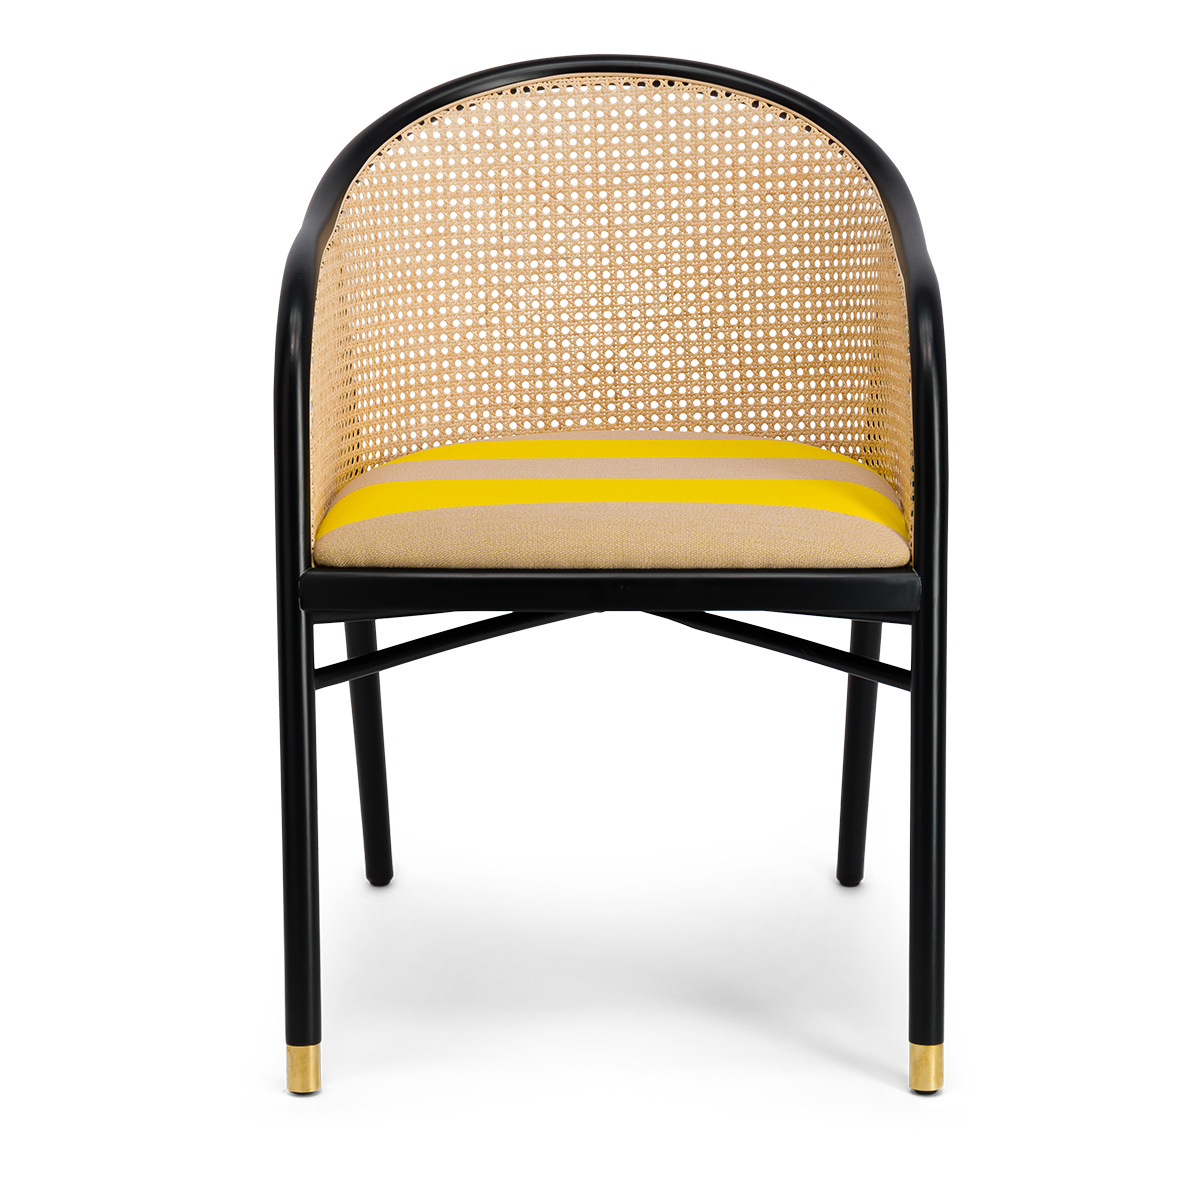 Cavallo Armchair, Kvadrat / Raf Simons Yellow Wool with Black Lacquered Beechwood Frame - Limited Edition